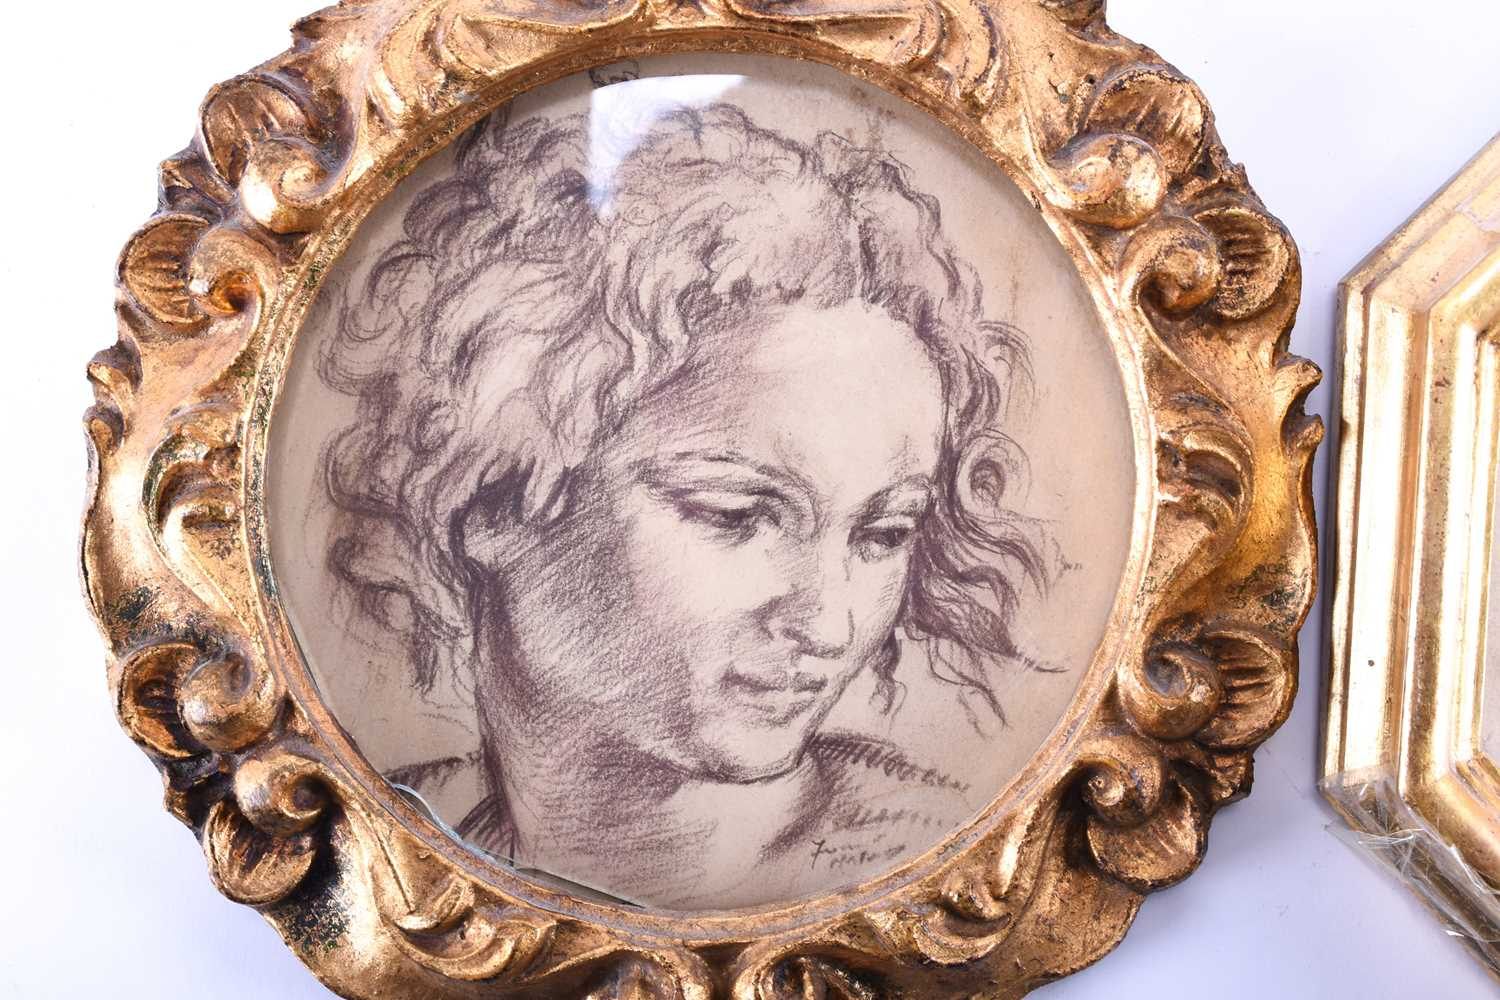 Lot 60 - Franco Matania (1922-2006) Italian/British, two old master style pastel sketches of classical